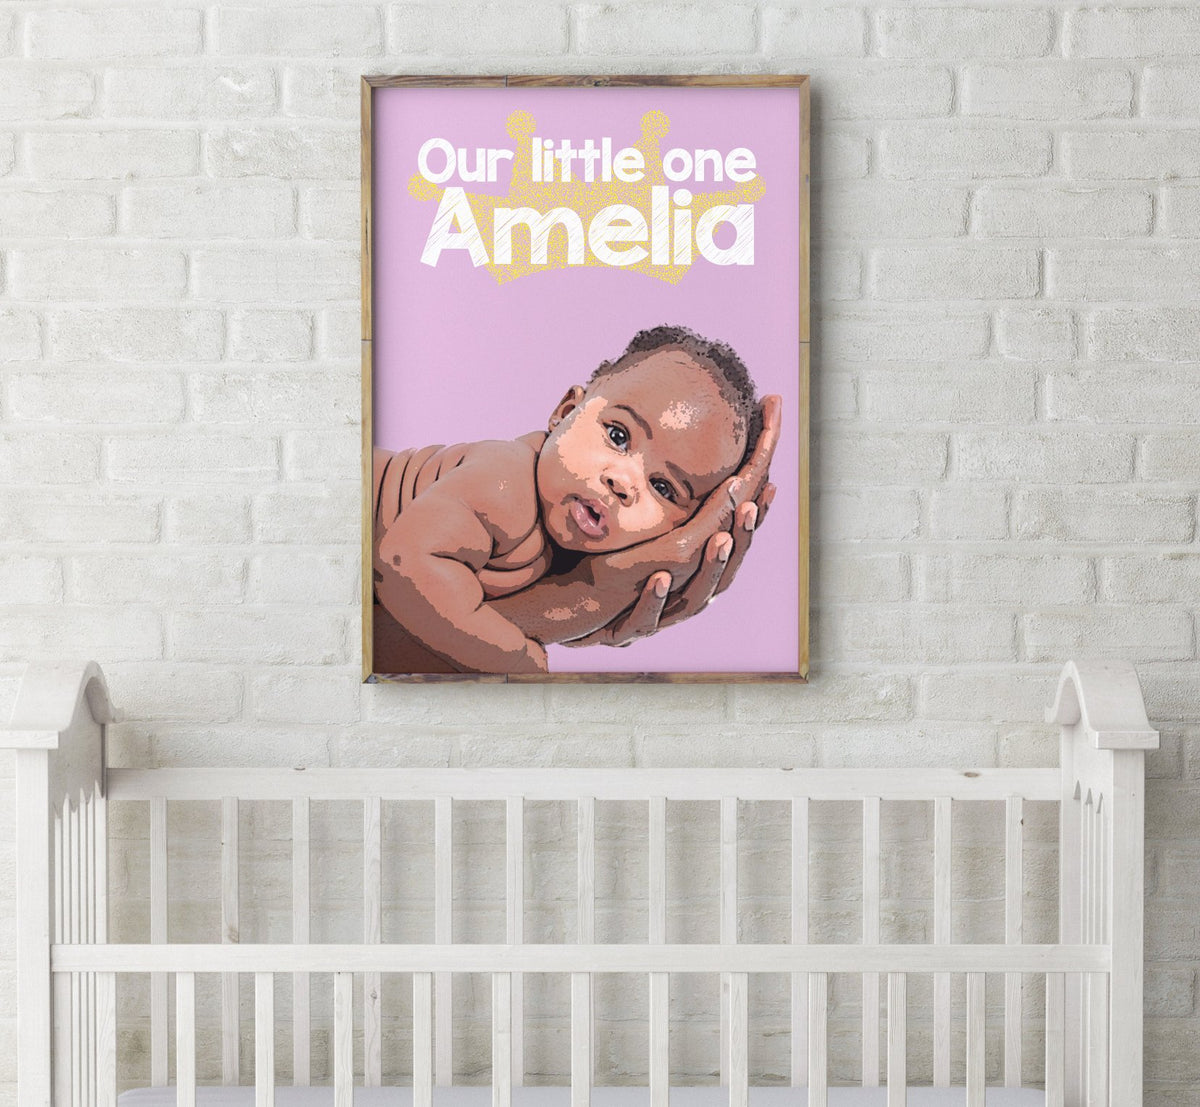 personalized kid art of Newborn baby displayed in a nursery